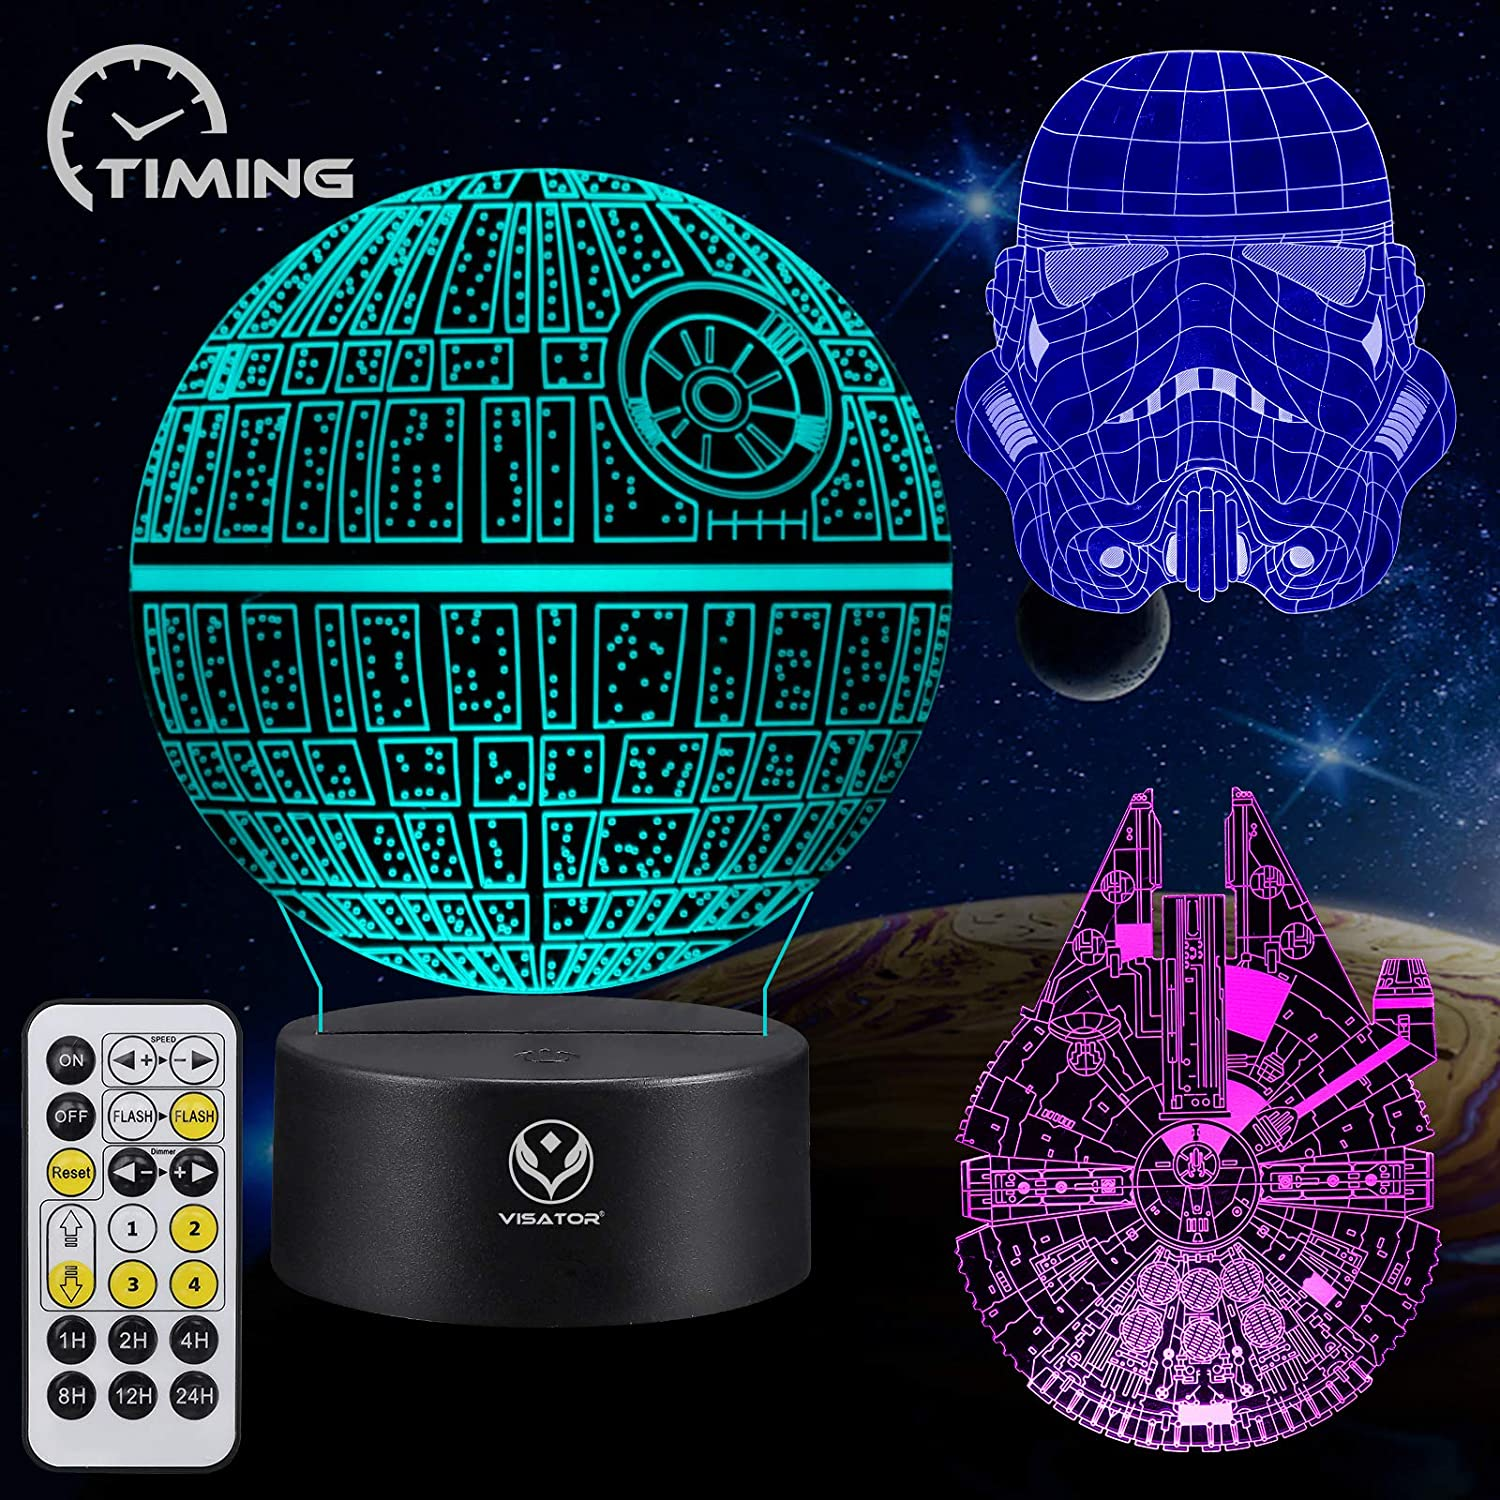 star wars illusion lamp toy 7 colors changing dimmable with smart touch and timing remote control